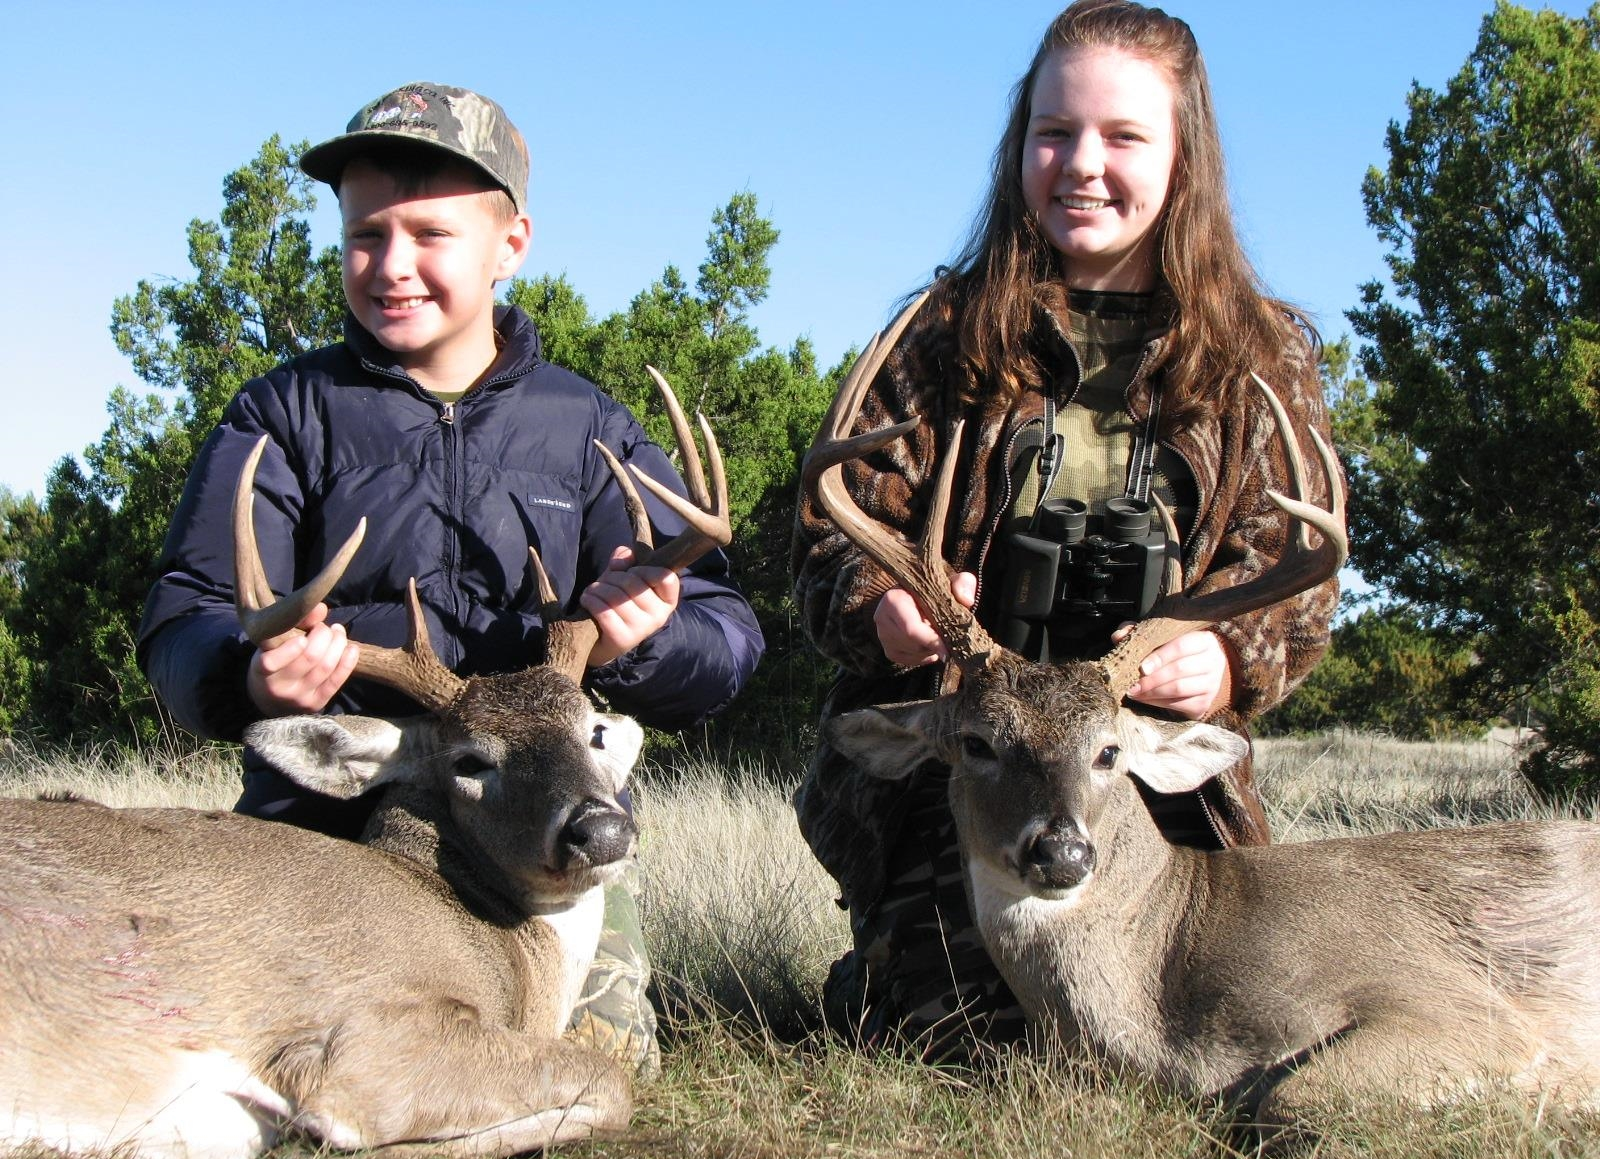 Great hunt this past weekend. Paxton shot his very first buck and Olivia shot her biggest buck to date, as well as accepted Jesus as her savior. Hallelujah!